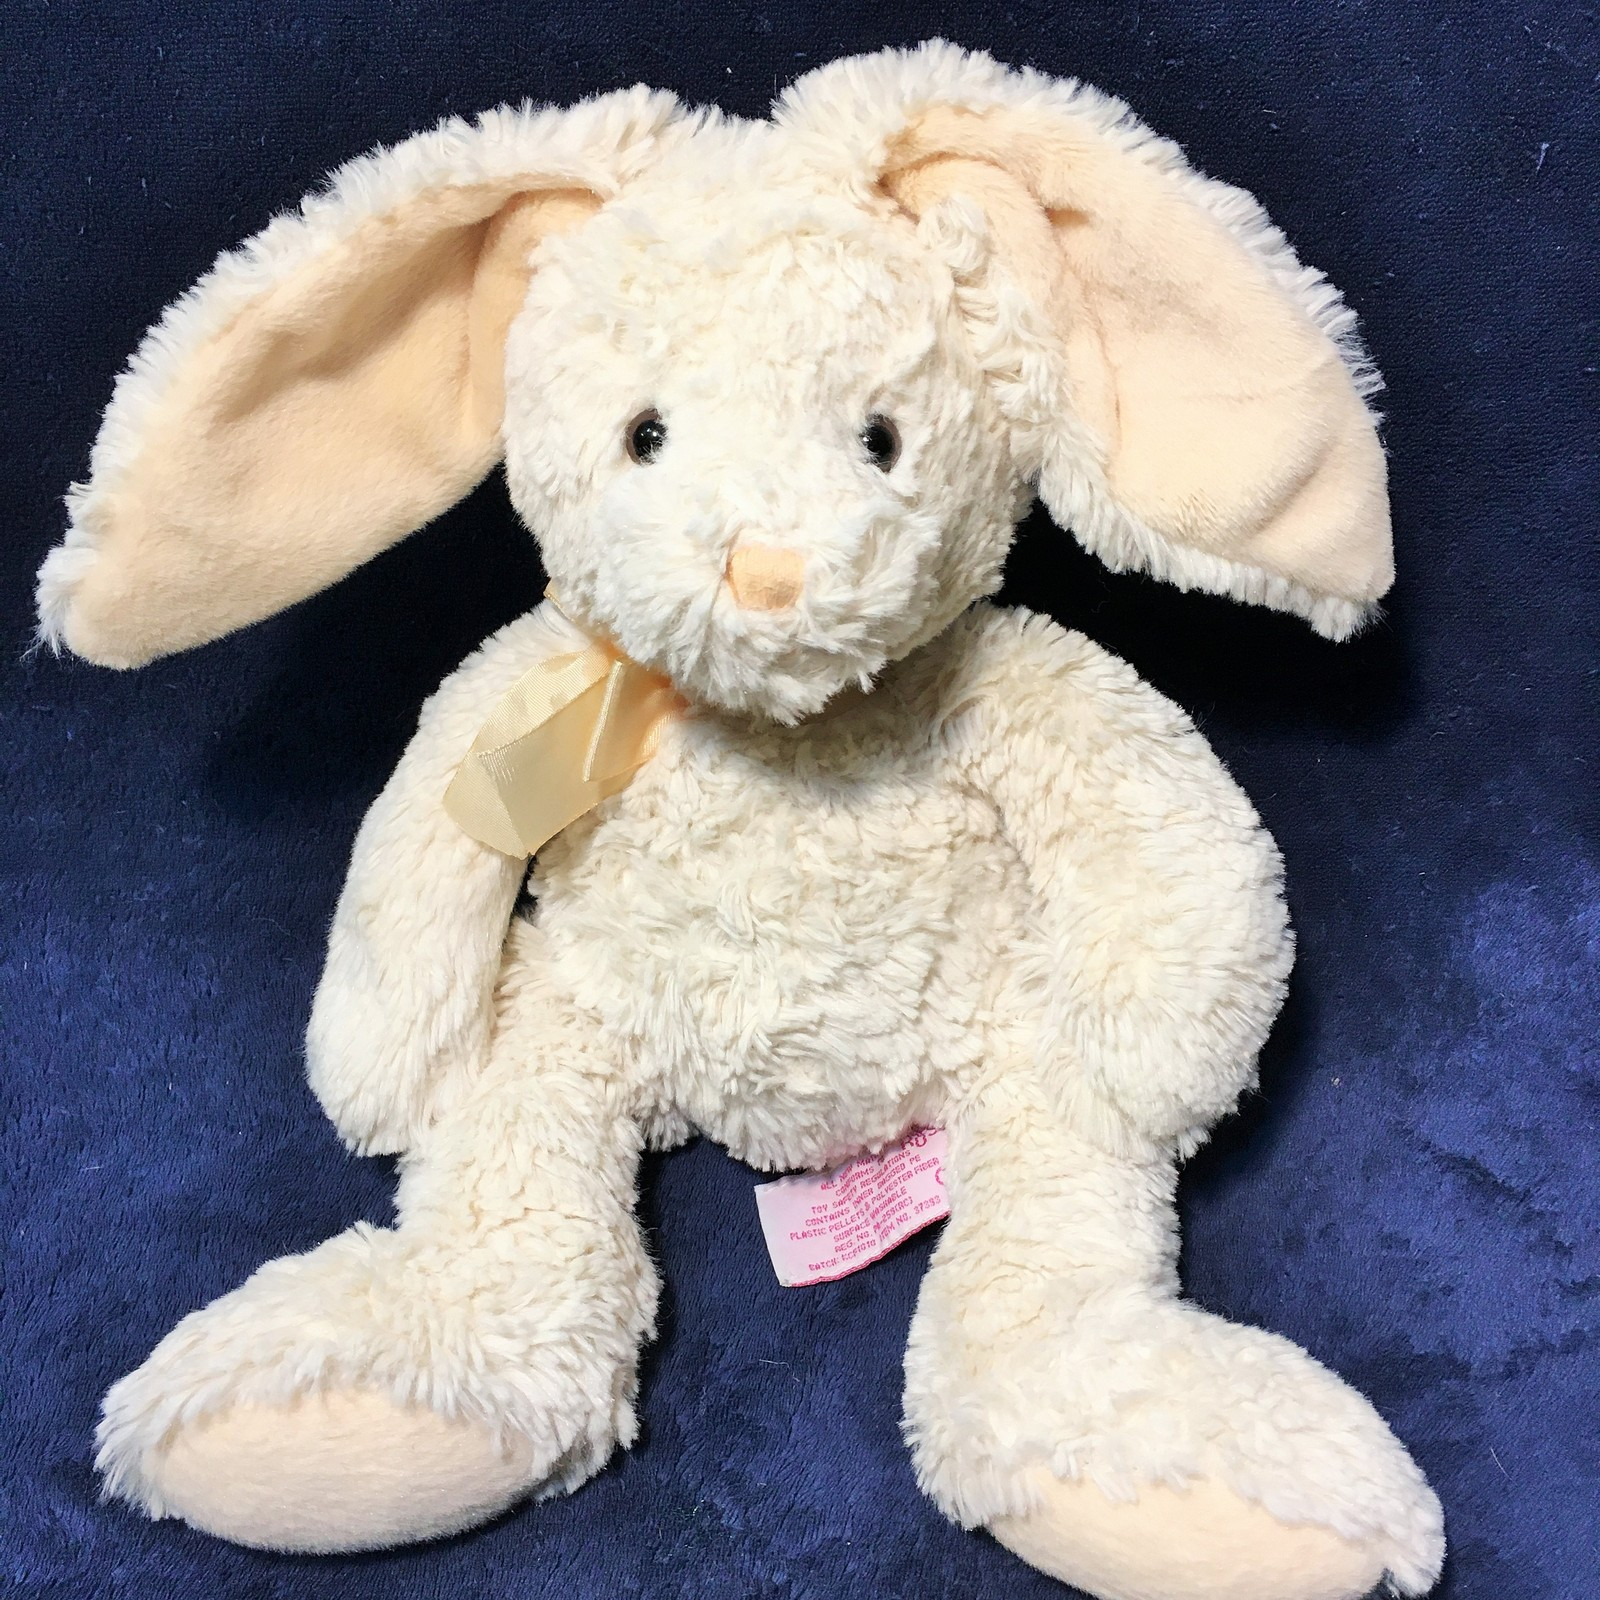 Primary image for Russ Berrie Bunny Rabbit HIPPITY Plush Toy RARE Cream Stuffed Animal #37393 -12""